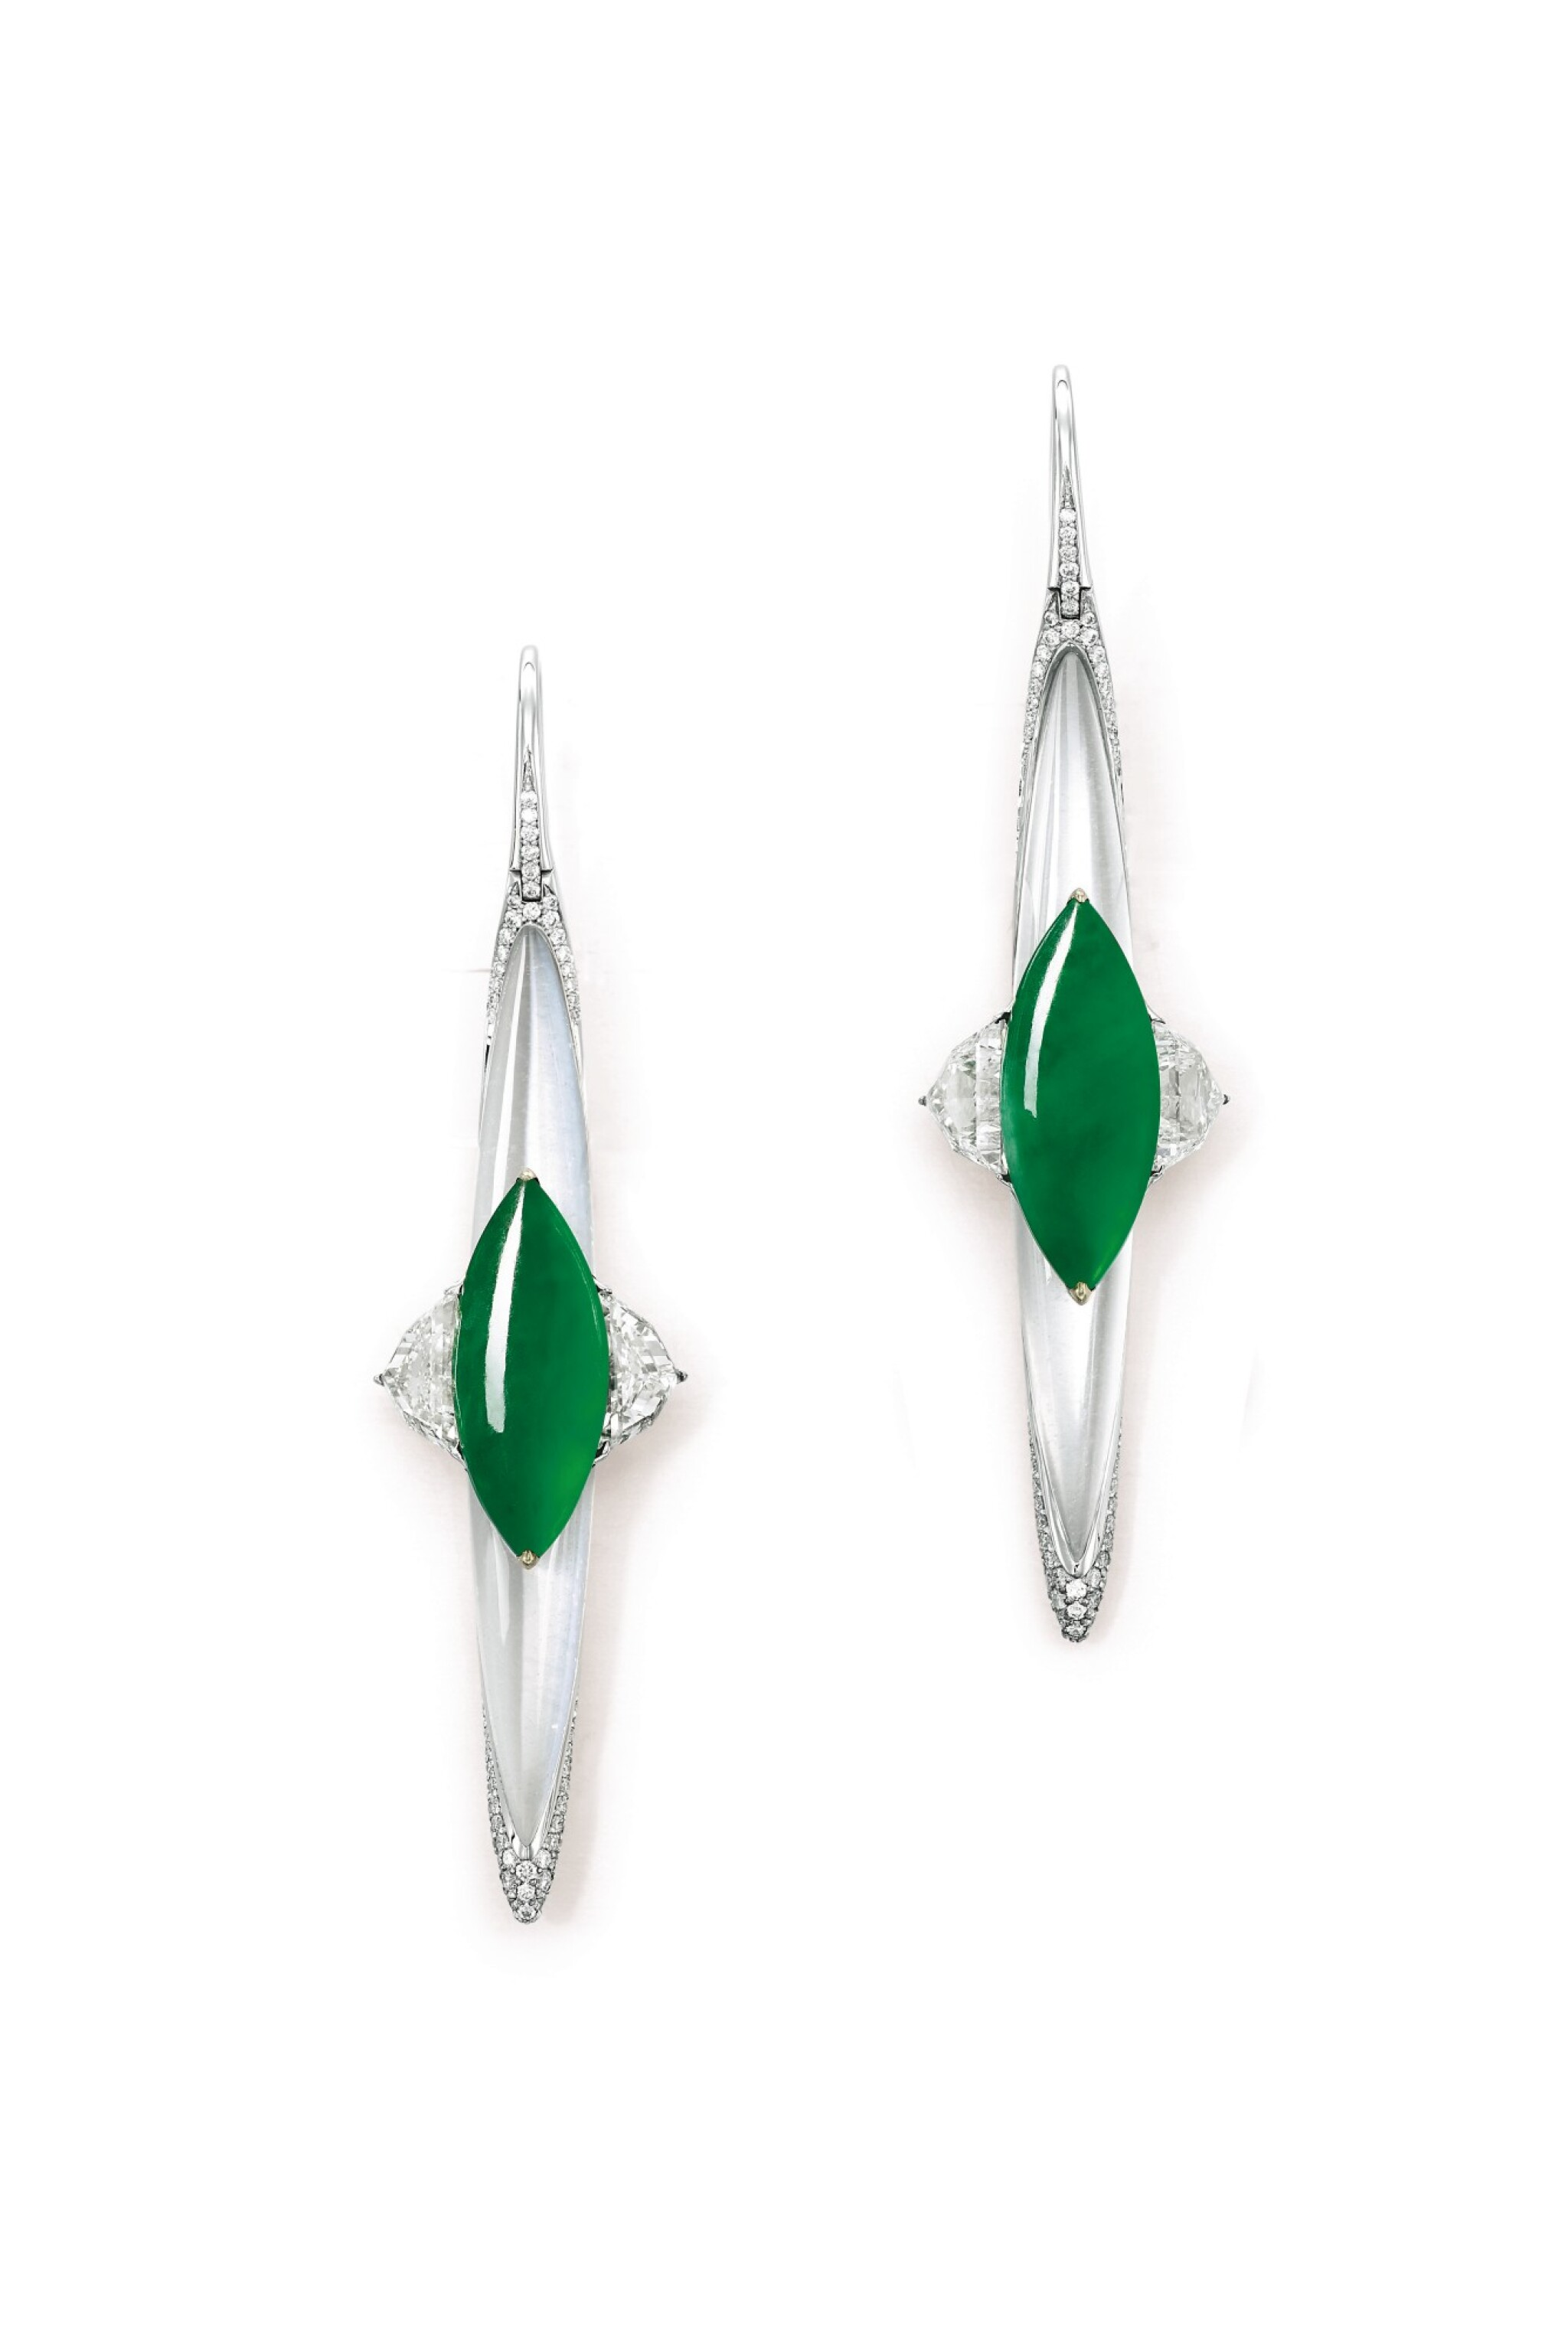 View full screen - View 1 of Lot 1644. FORMS |Pair of Jadeite, Diamond and Moonstone Pendent Earrings | FORMS | 天然翡翠 配 鑽石 及 月光石 耳墜一對.